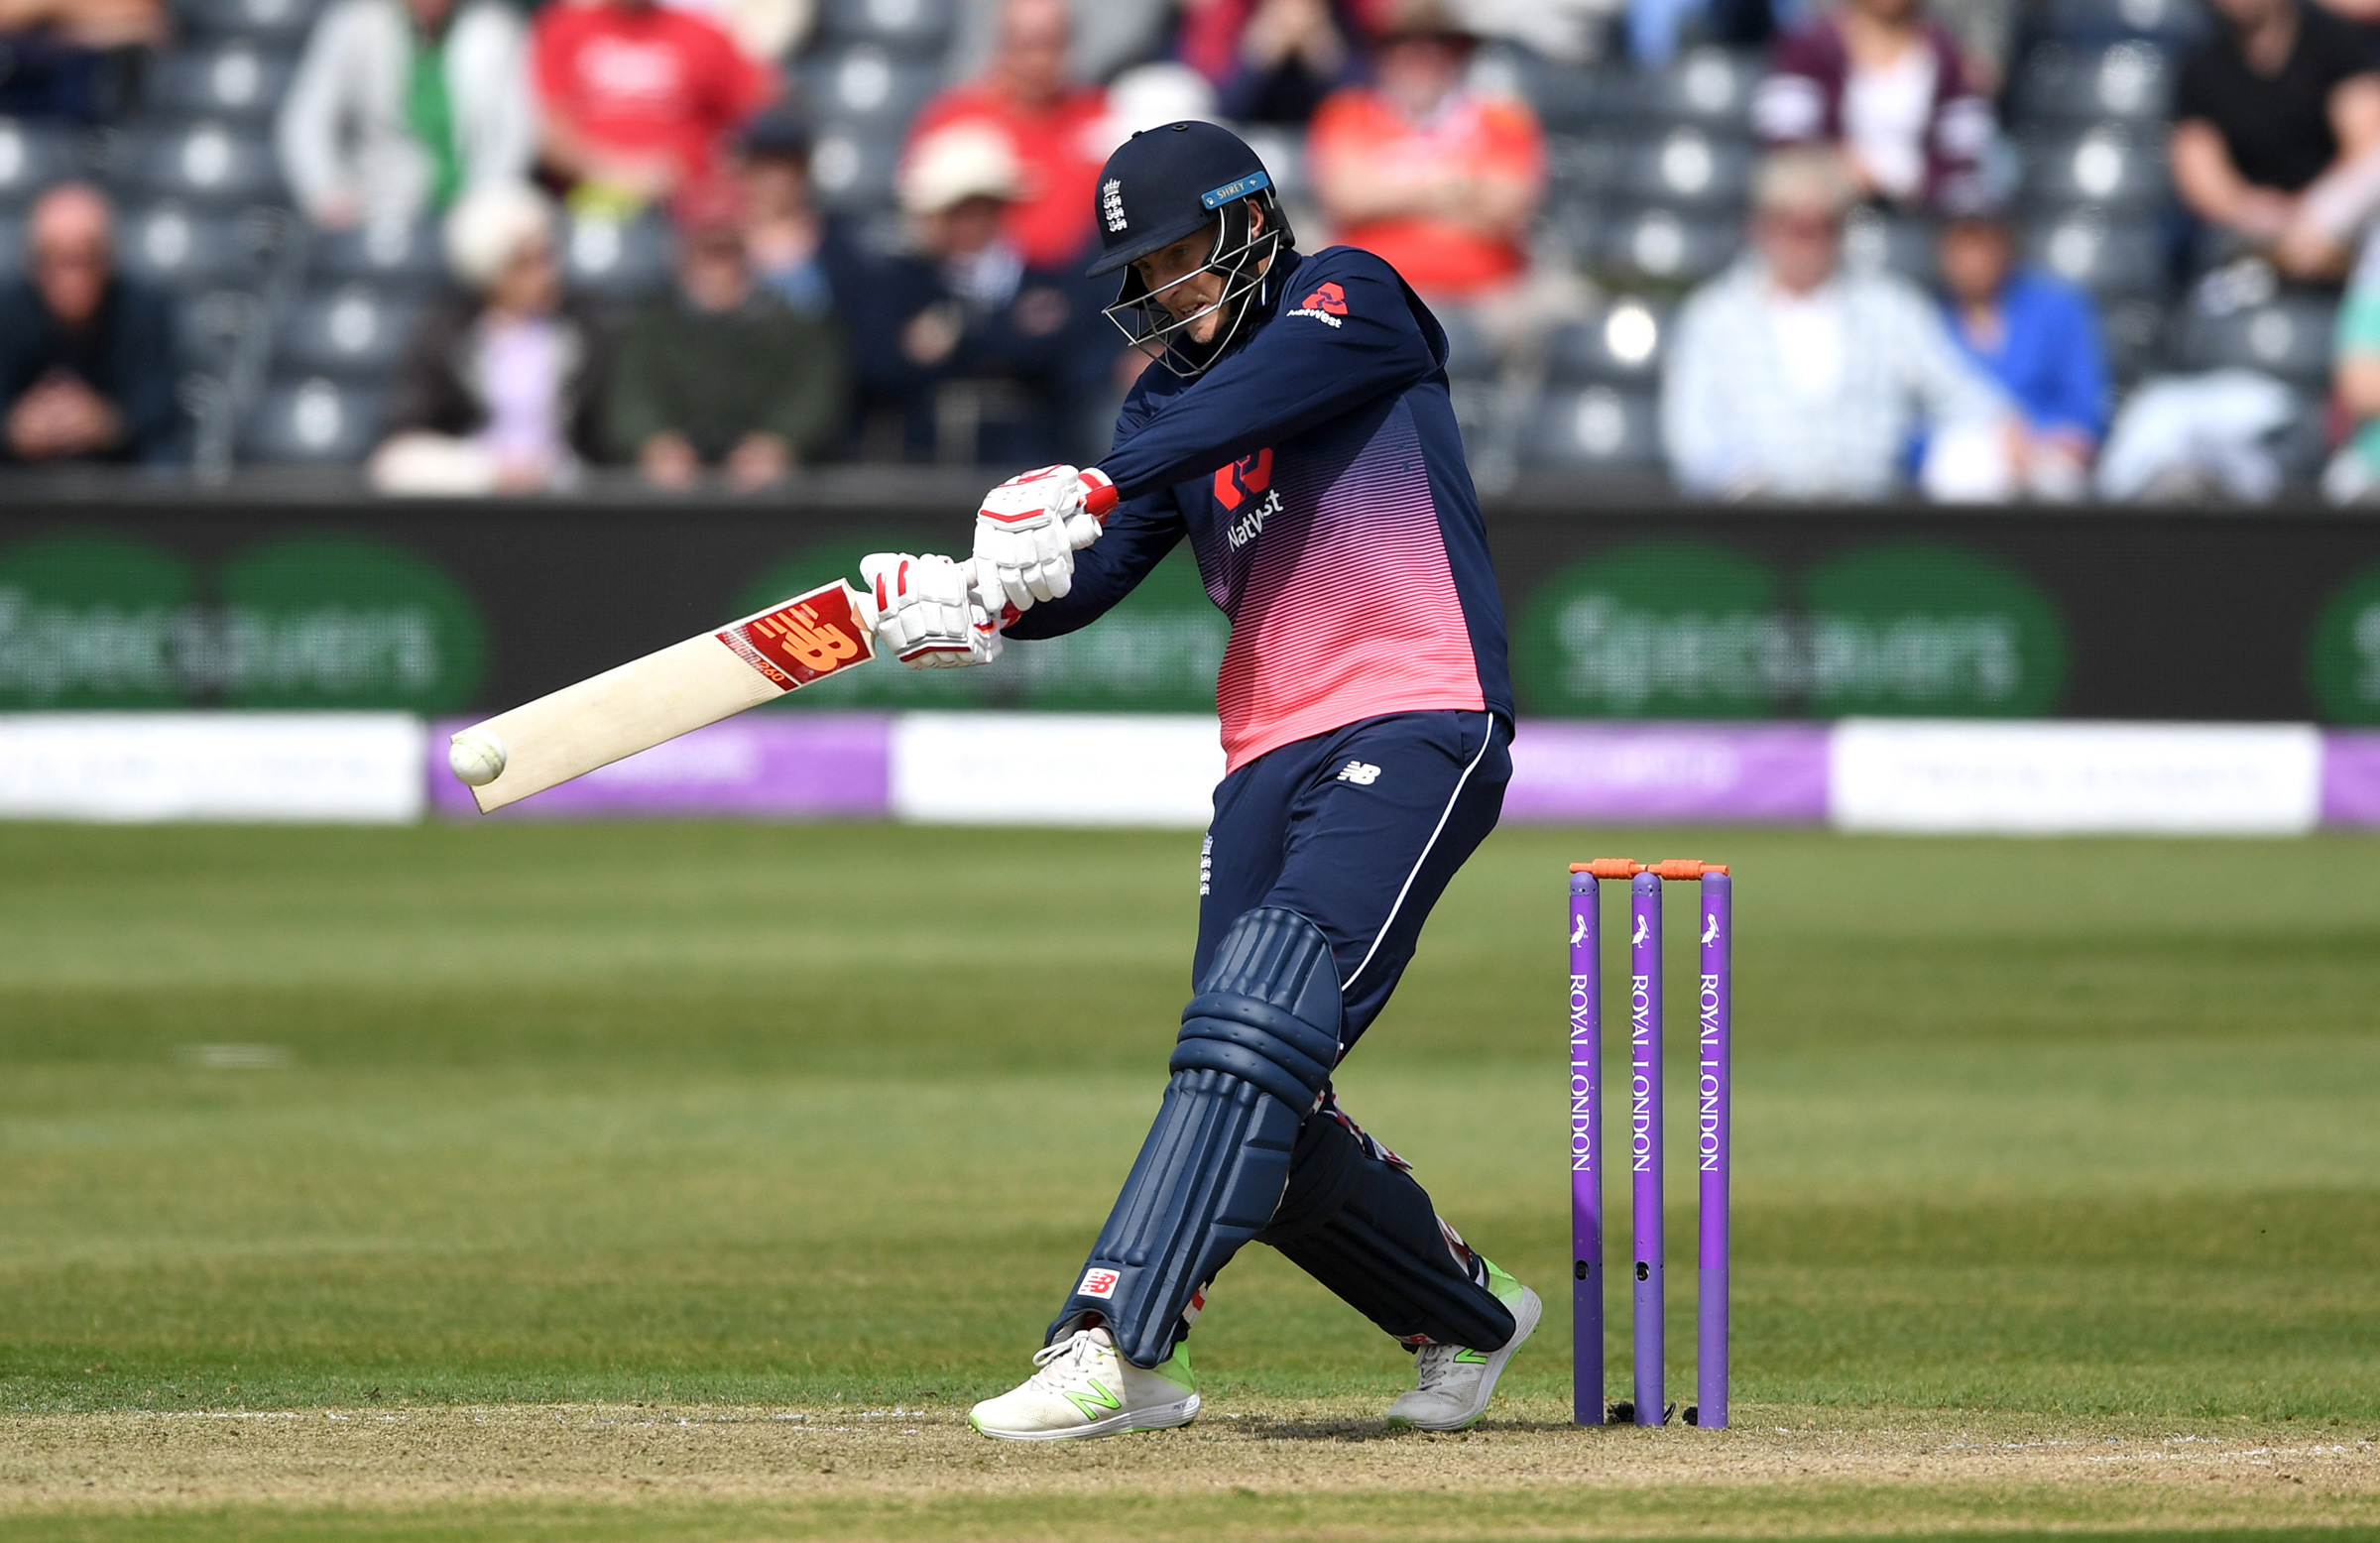 Joe Root is looking to build on his power hitting // Getty